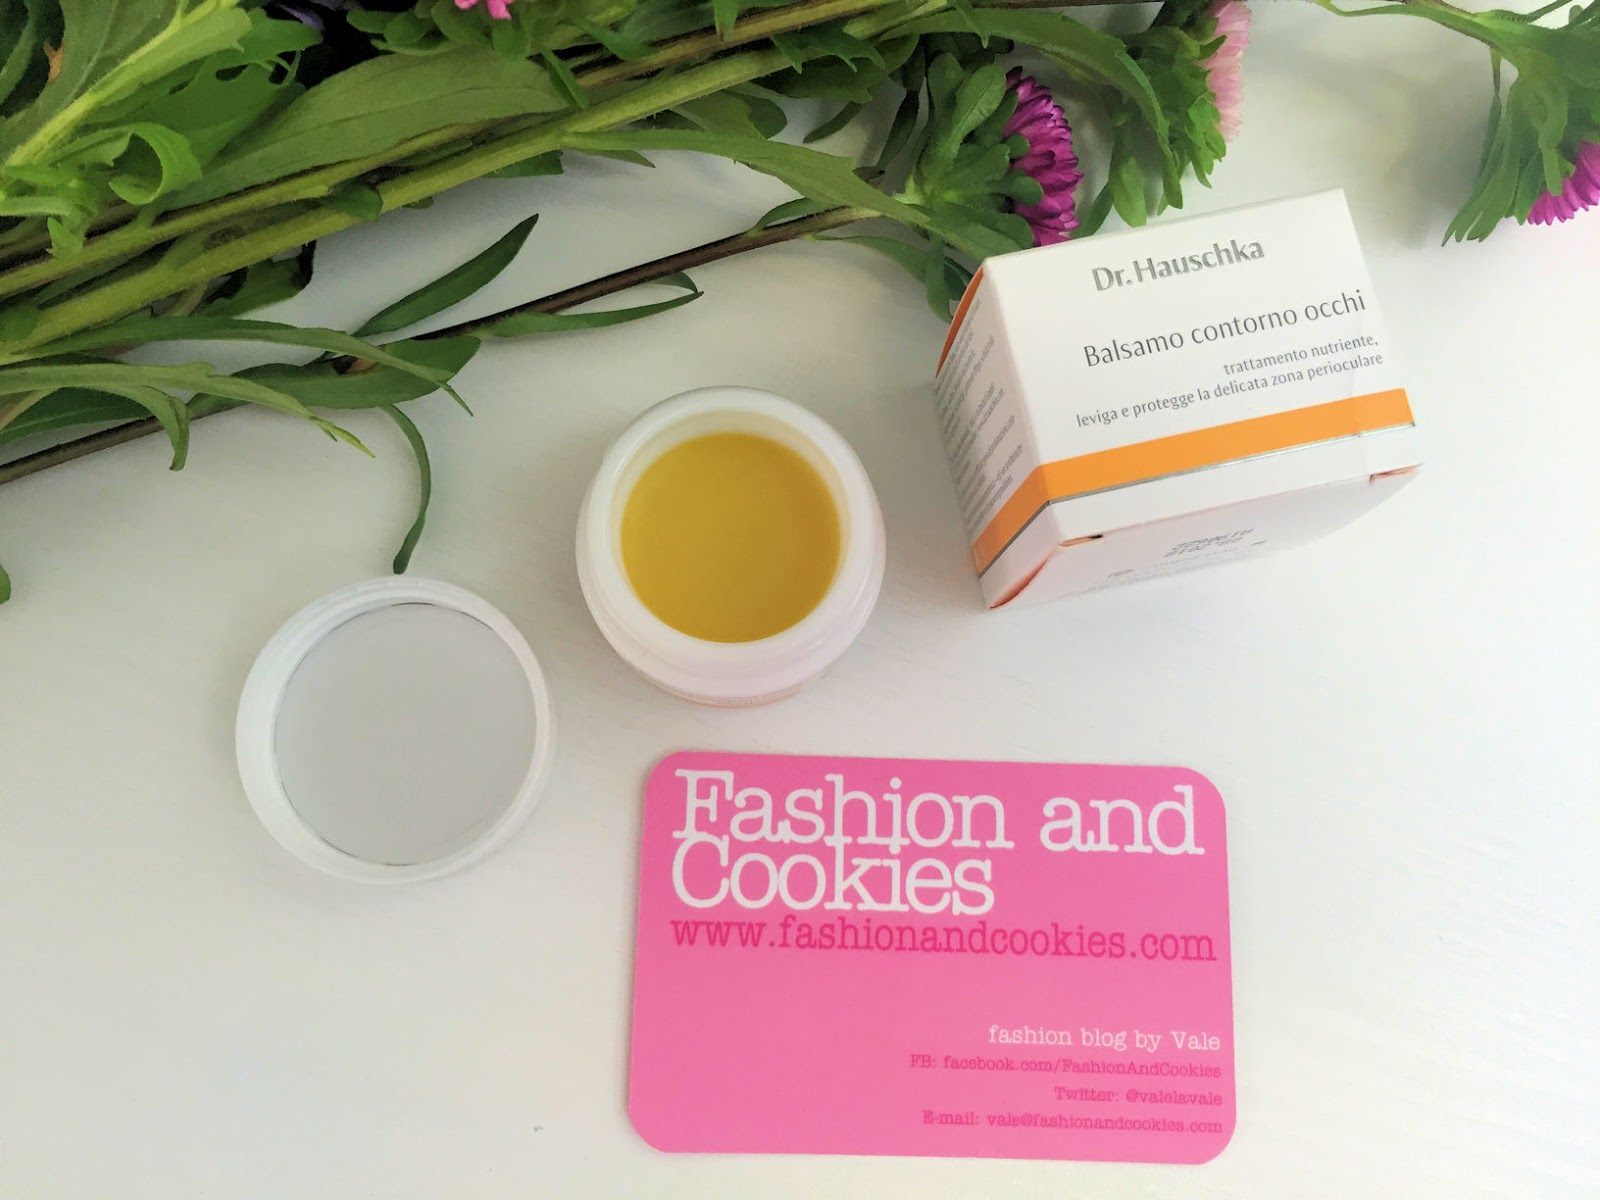 Dr Hauschka Balsamo contorno occhi on Fashion and Cookies beauty blog, beauty blogger